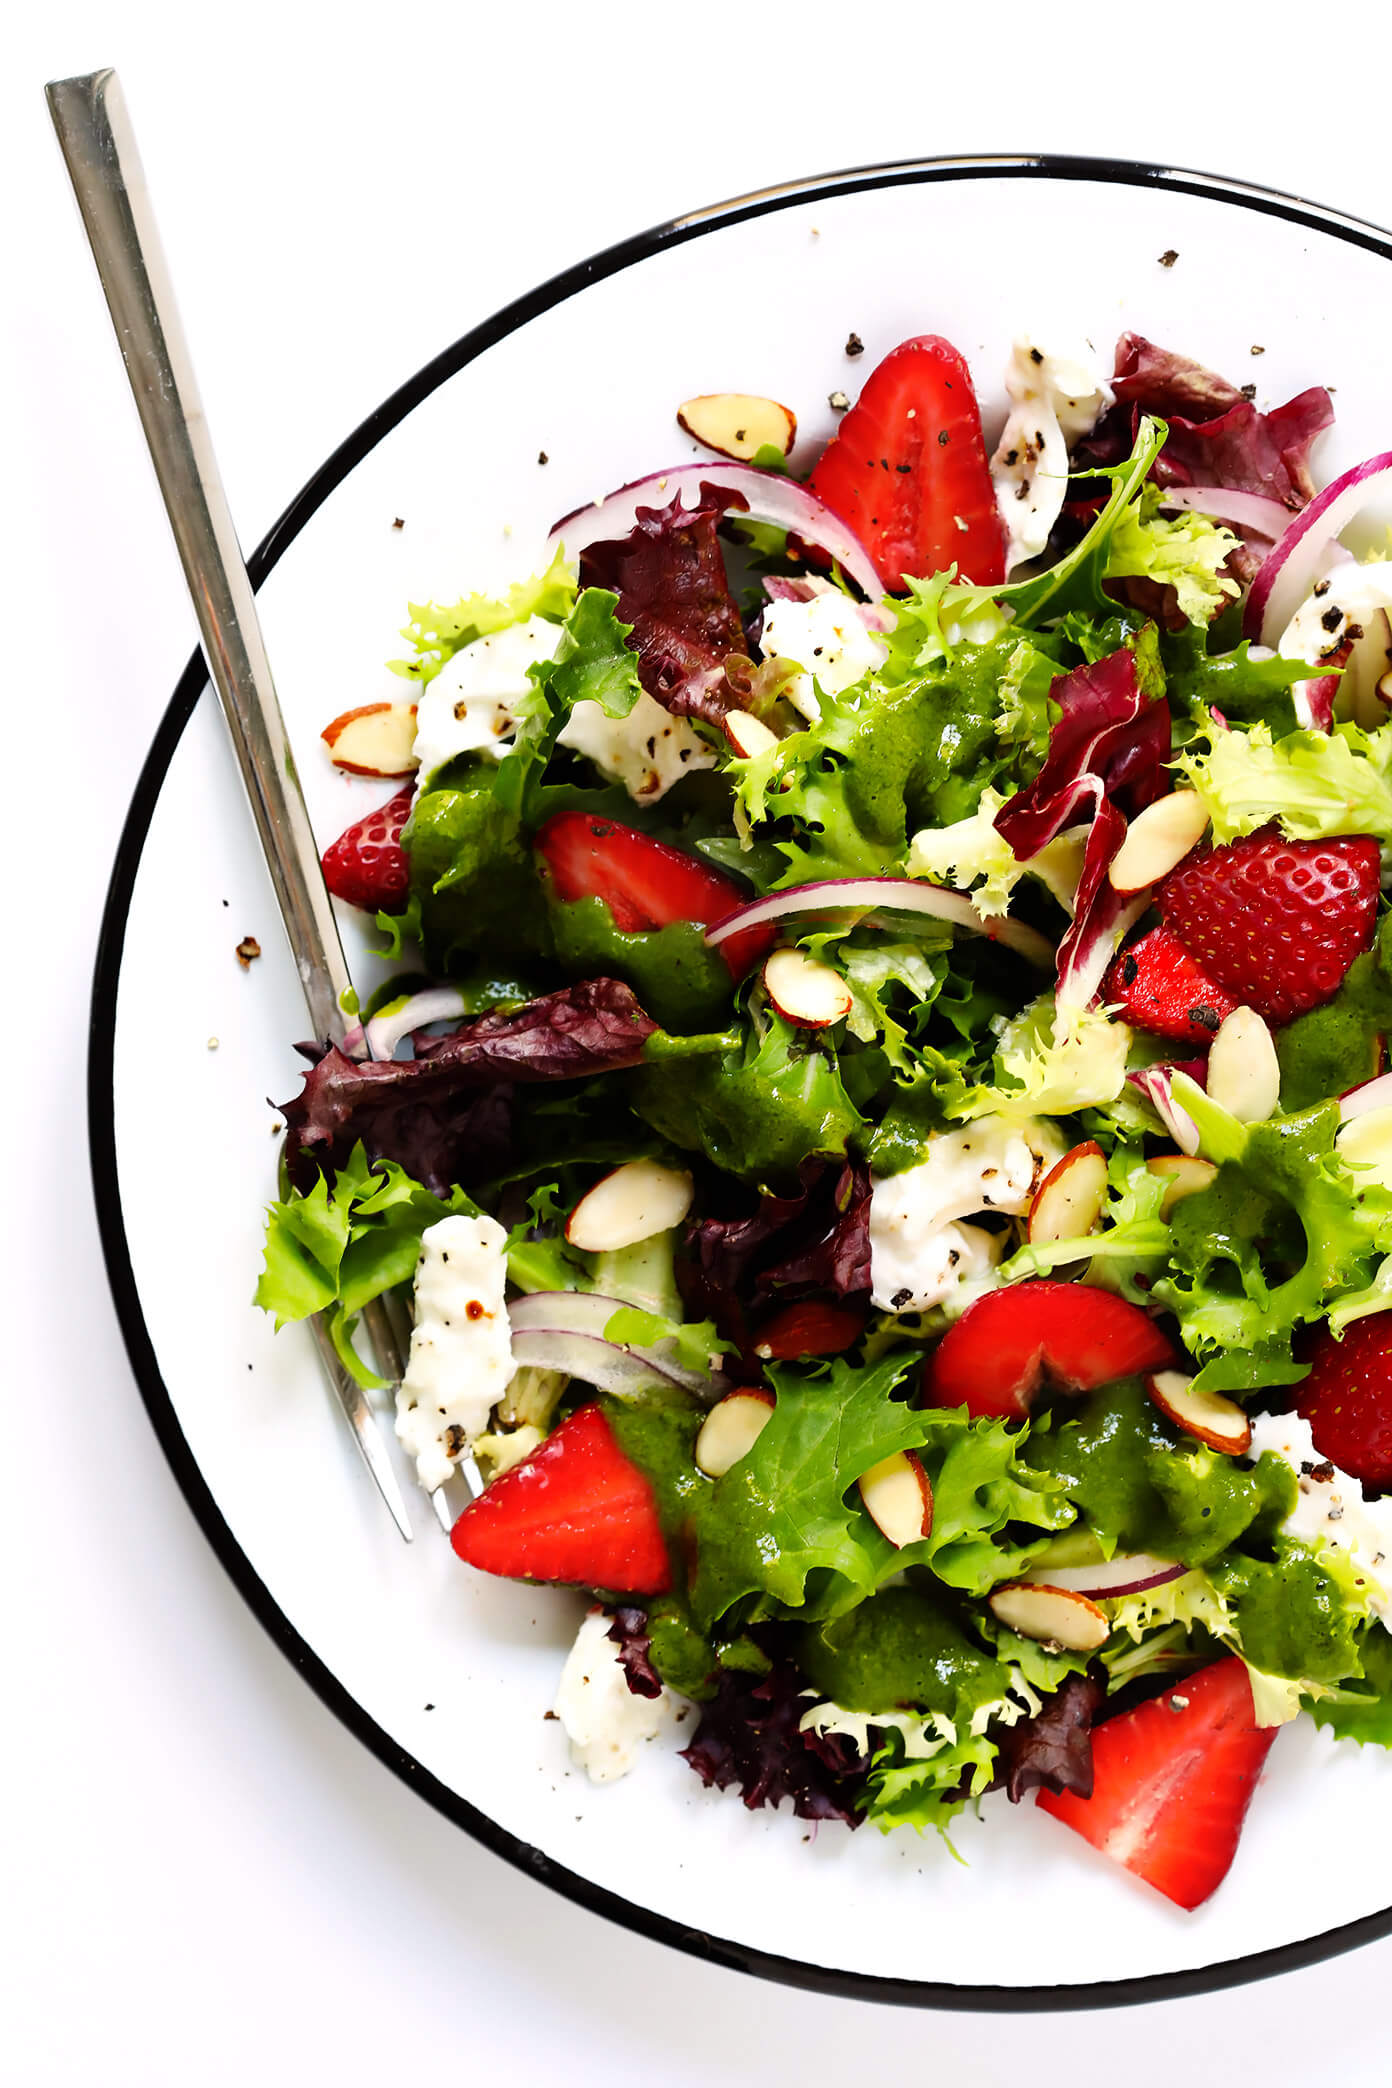 Strawberry Burrata Salad with Basil Vinaigrette